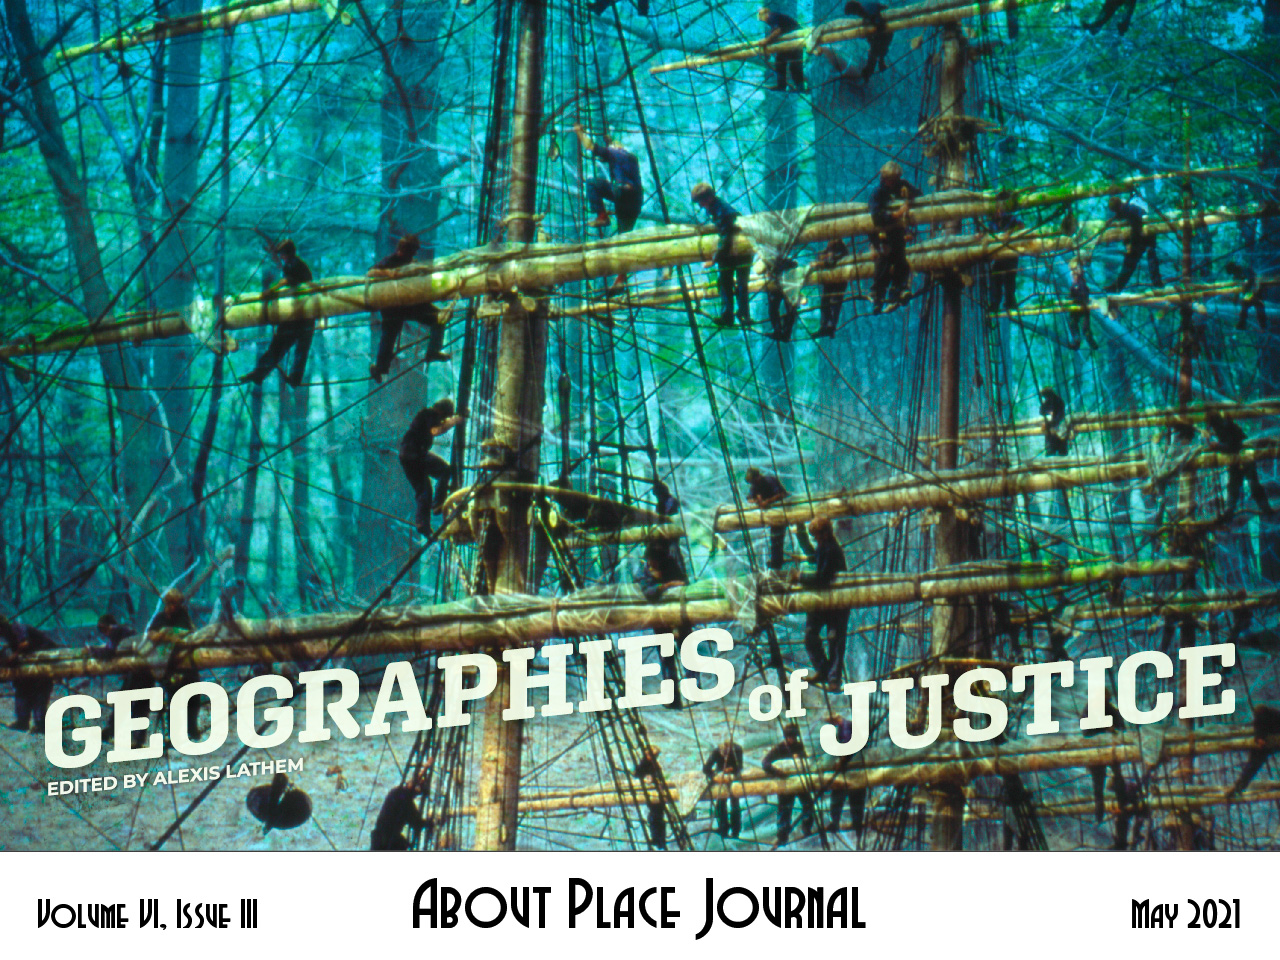 Geographies of Justice cover - Volume VI, Issue III, May 2021 - About Place Journal